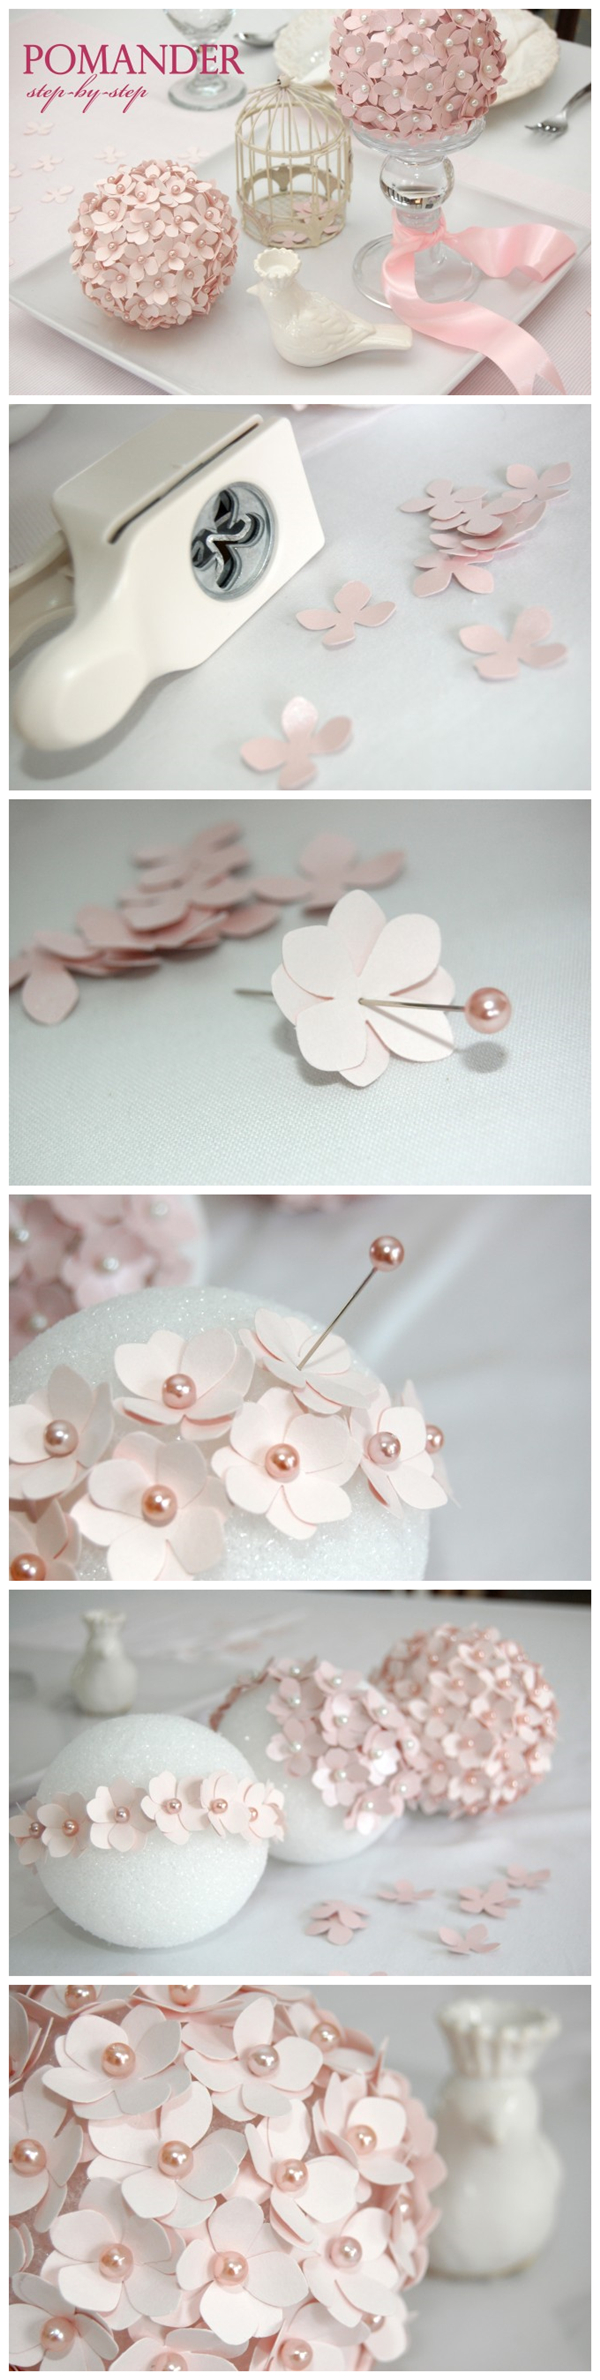 Make Pomander Flower Ball Tutorial